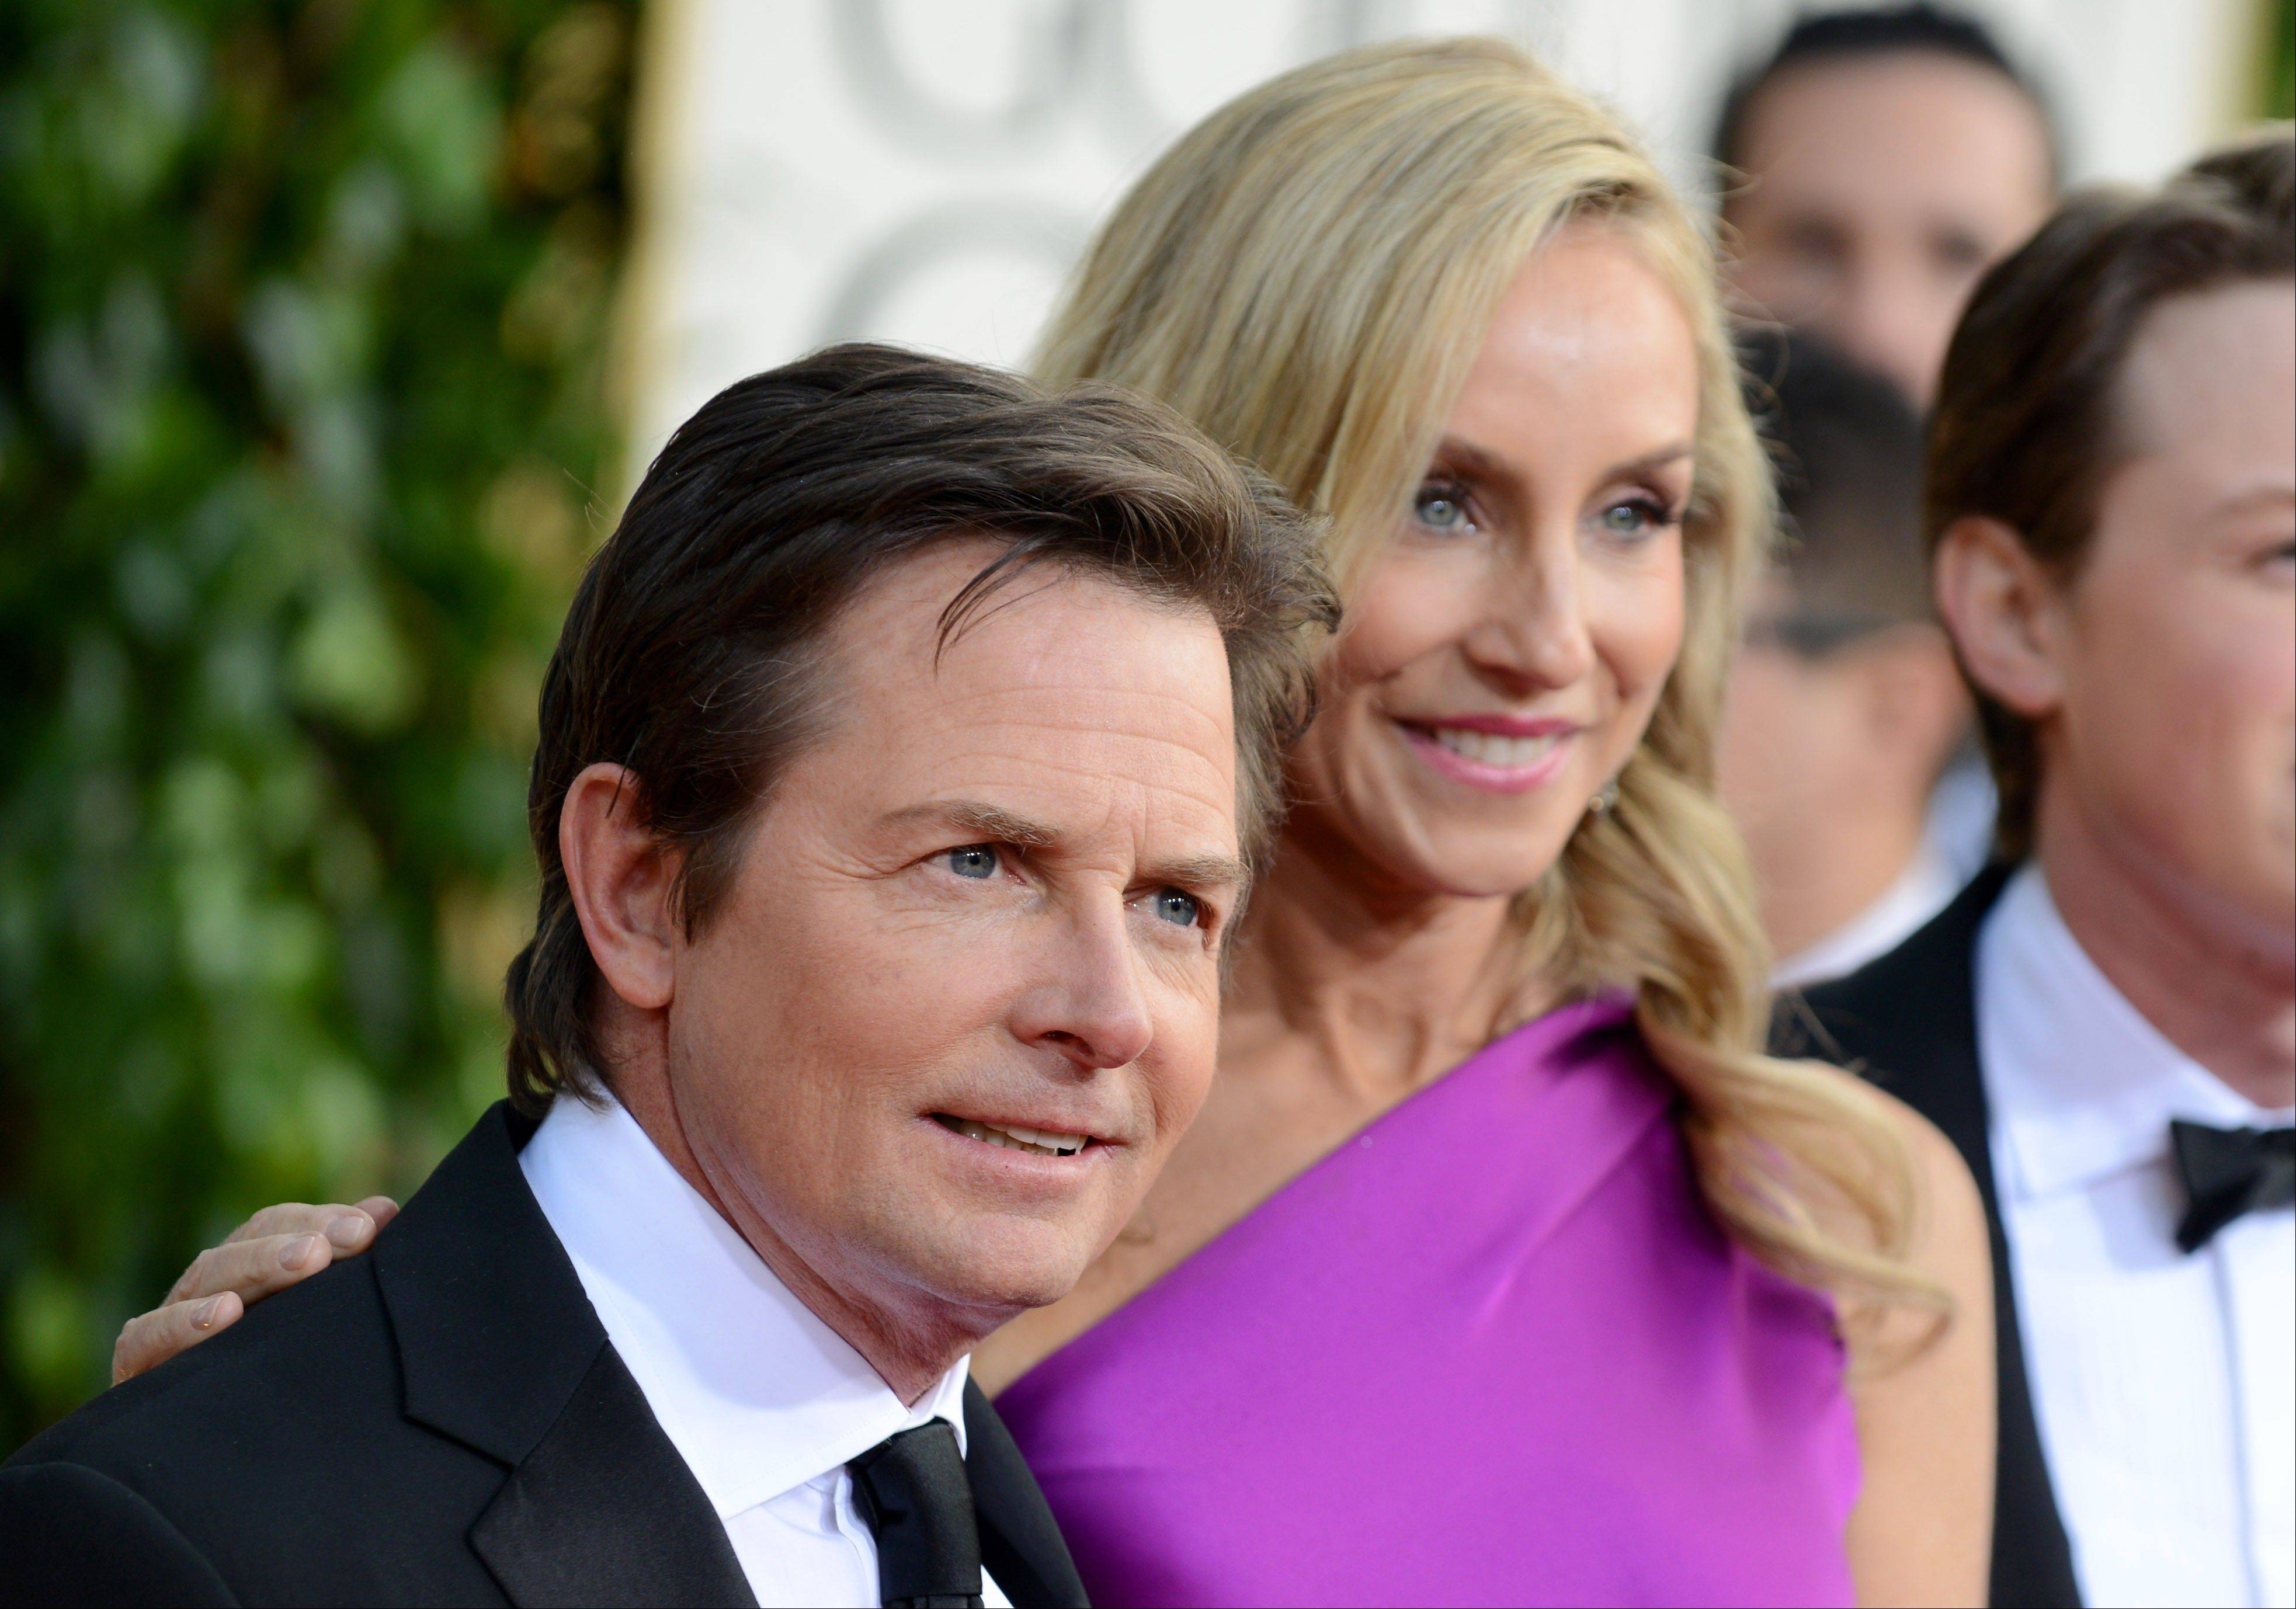 Actor Michael J. Fox and Tracy Pollan arrive at the 70th Annual Golden Globe Awards at the Beverly Hilton Hotel on Sunday Jan. 13, 2013, in Beverly Hills, Calif.